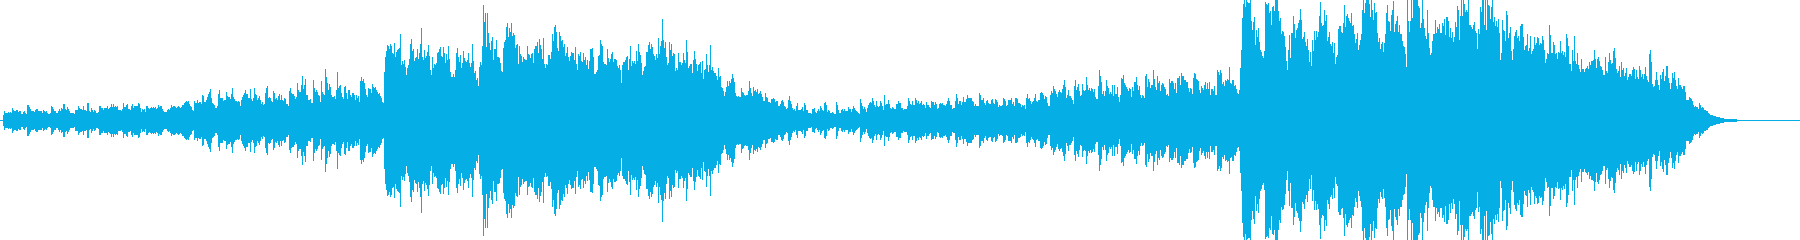 Christmas: Traditional Christmas Music's reproduced waveform